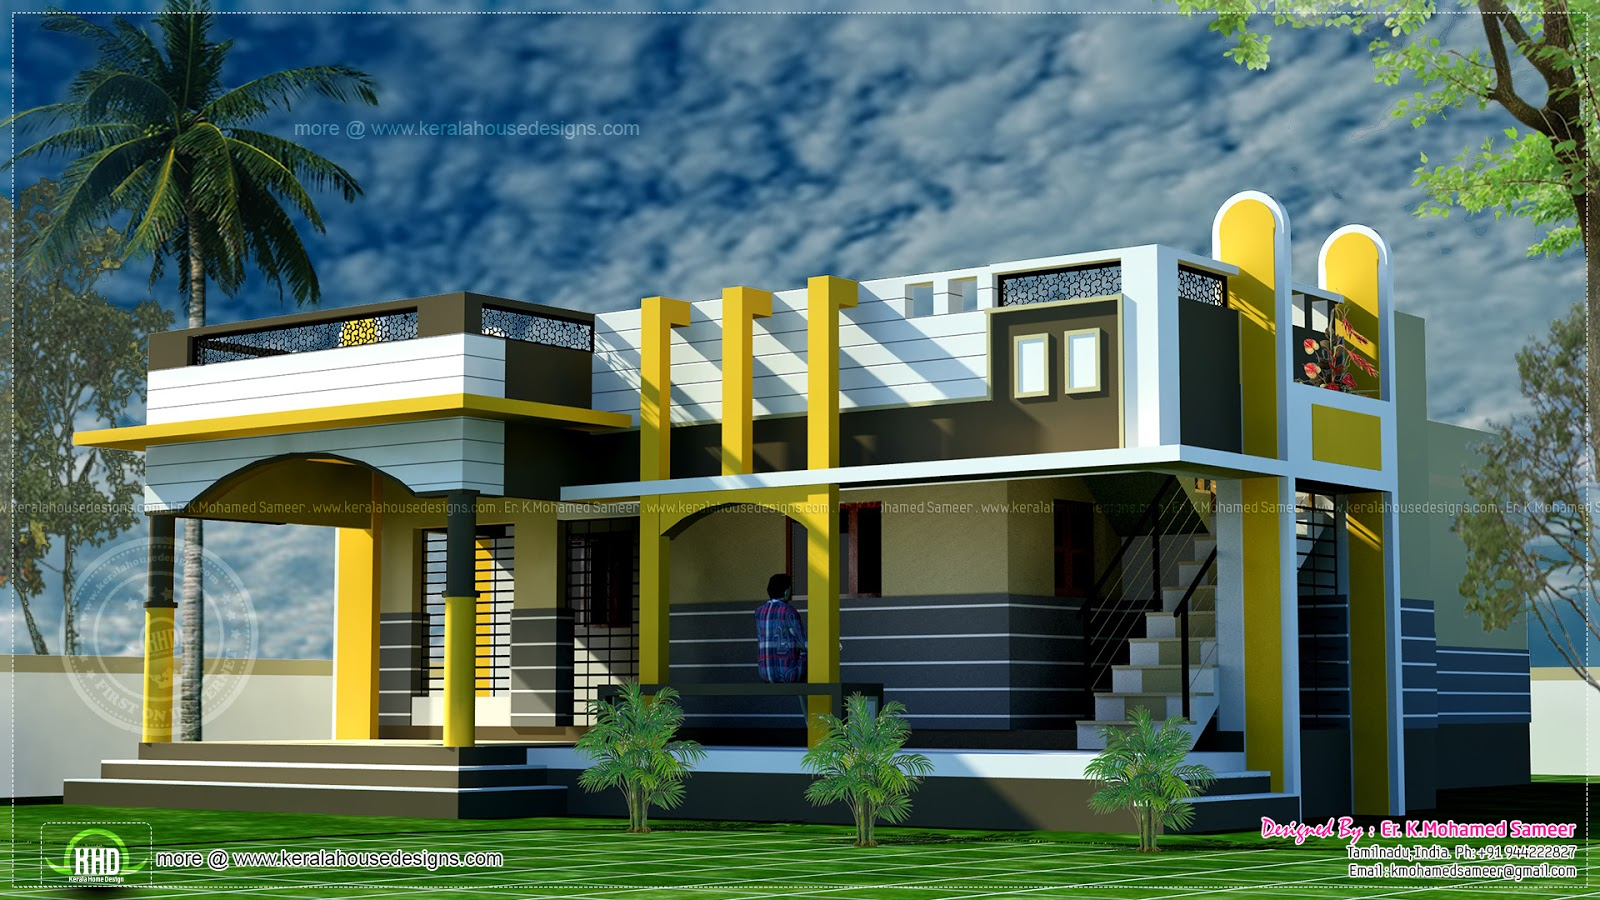 Small house design contemporary style kerala home design Indian small house design pictures